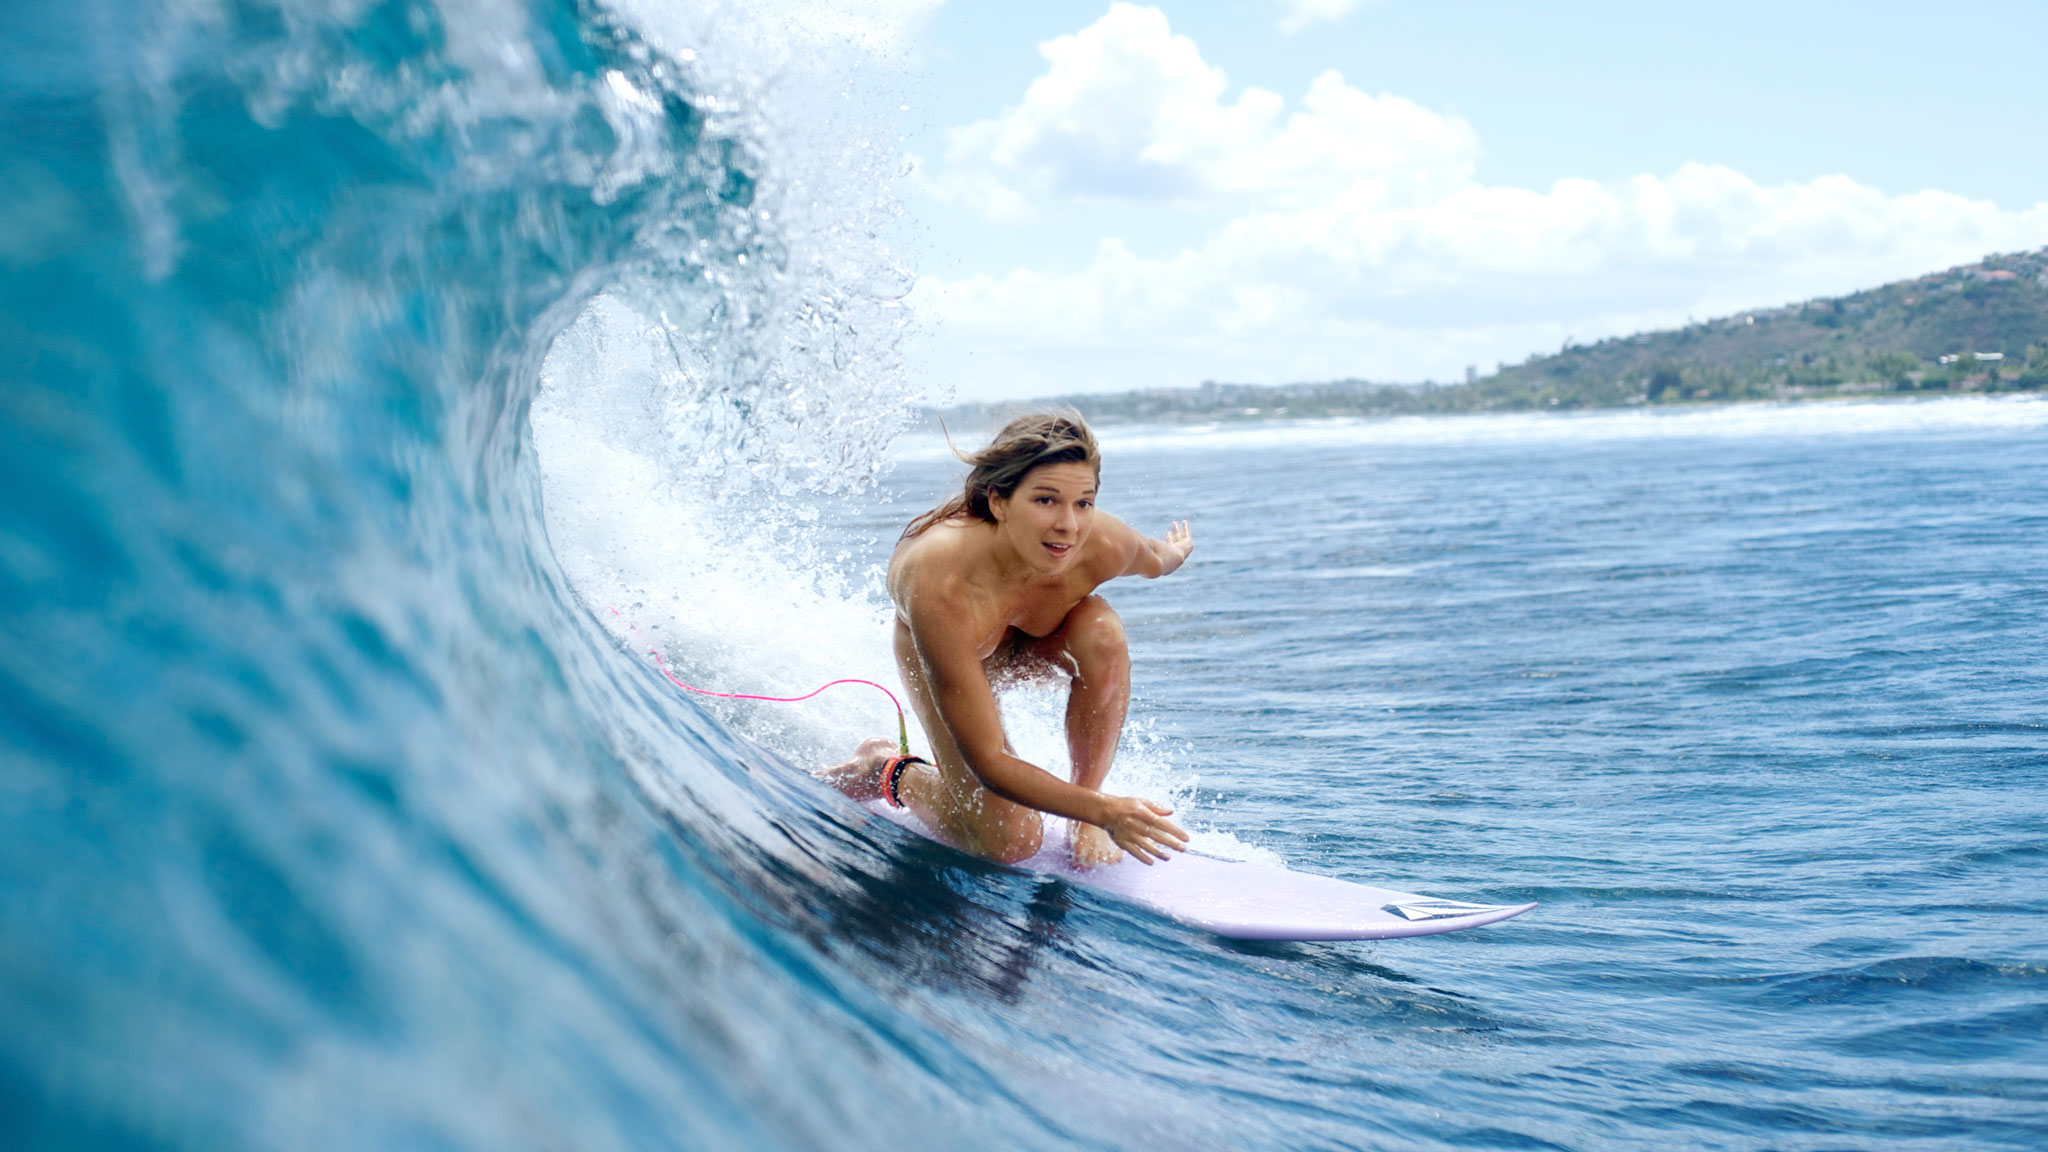 coco ho 2014 body issue action sports athletes outtakes x games. Black Bedroom Furniture Sets. Home Design Ideas